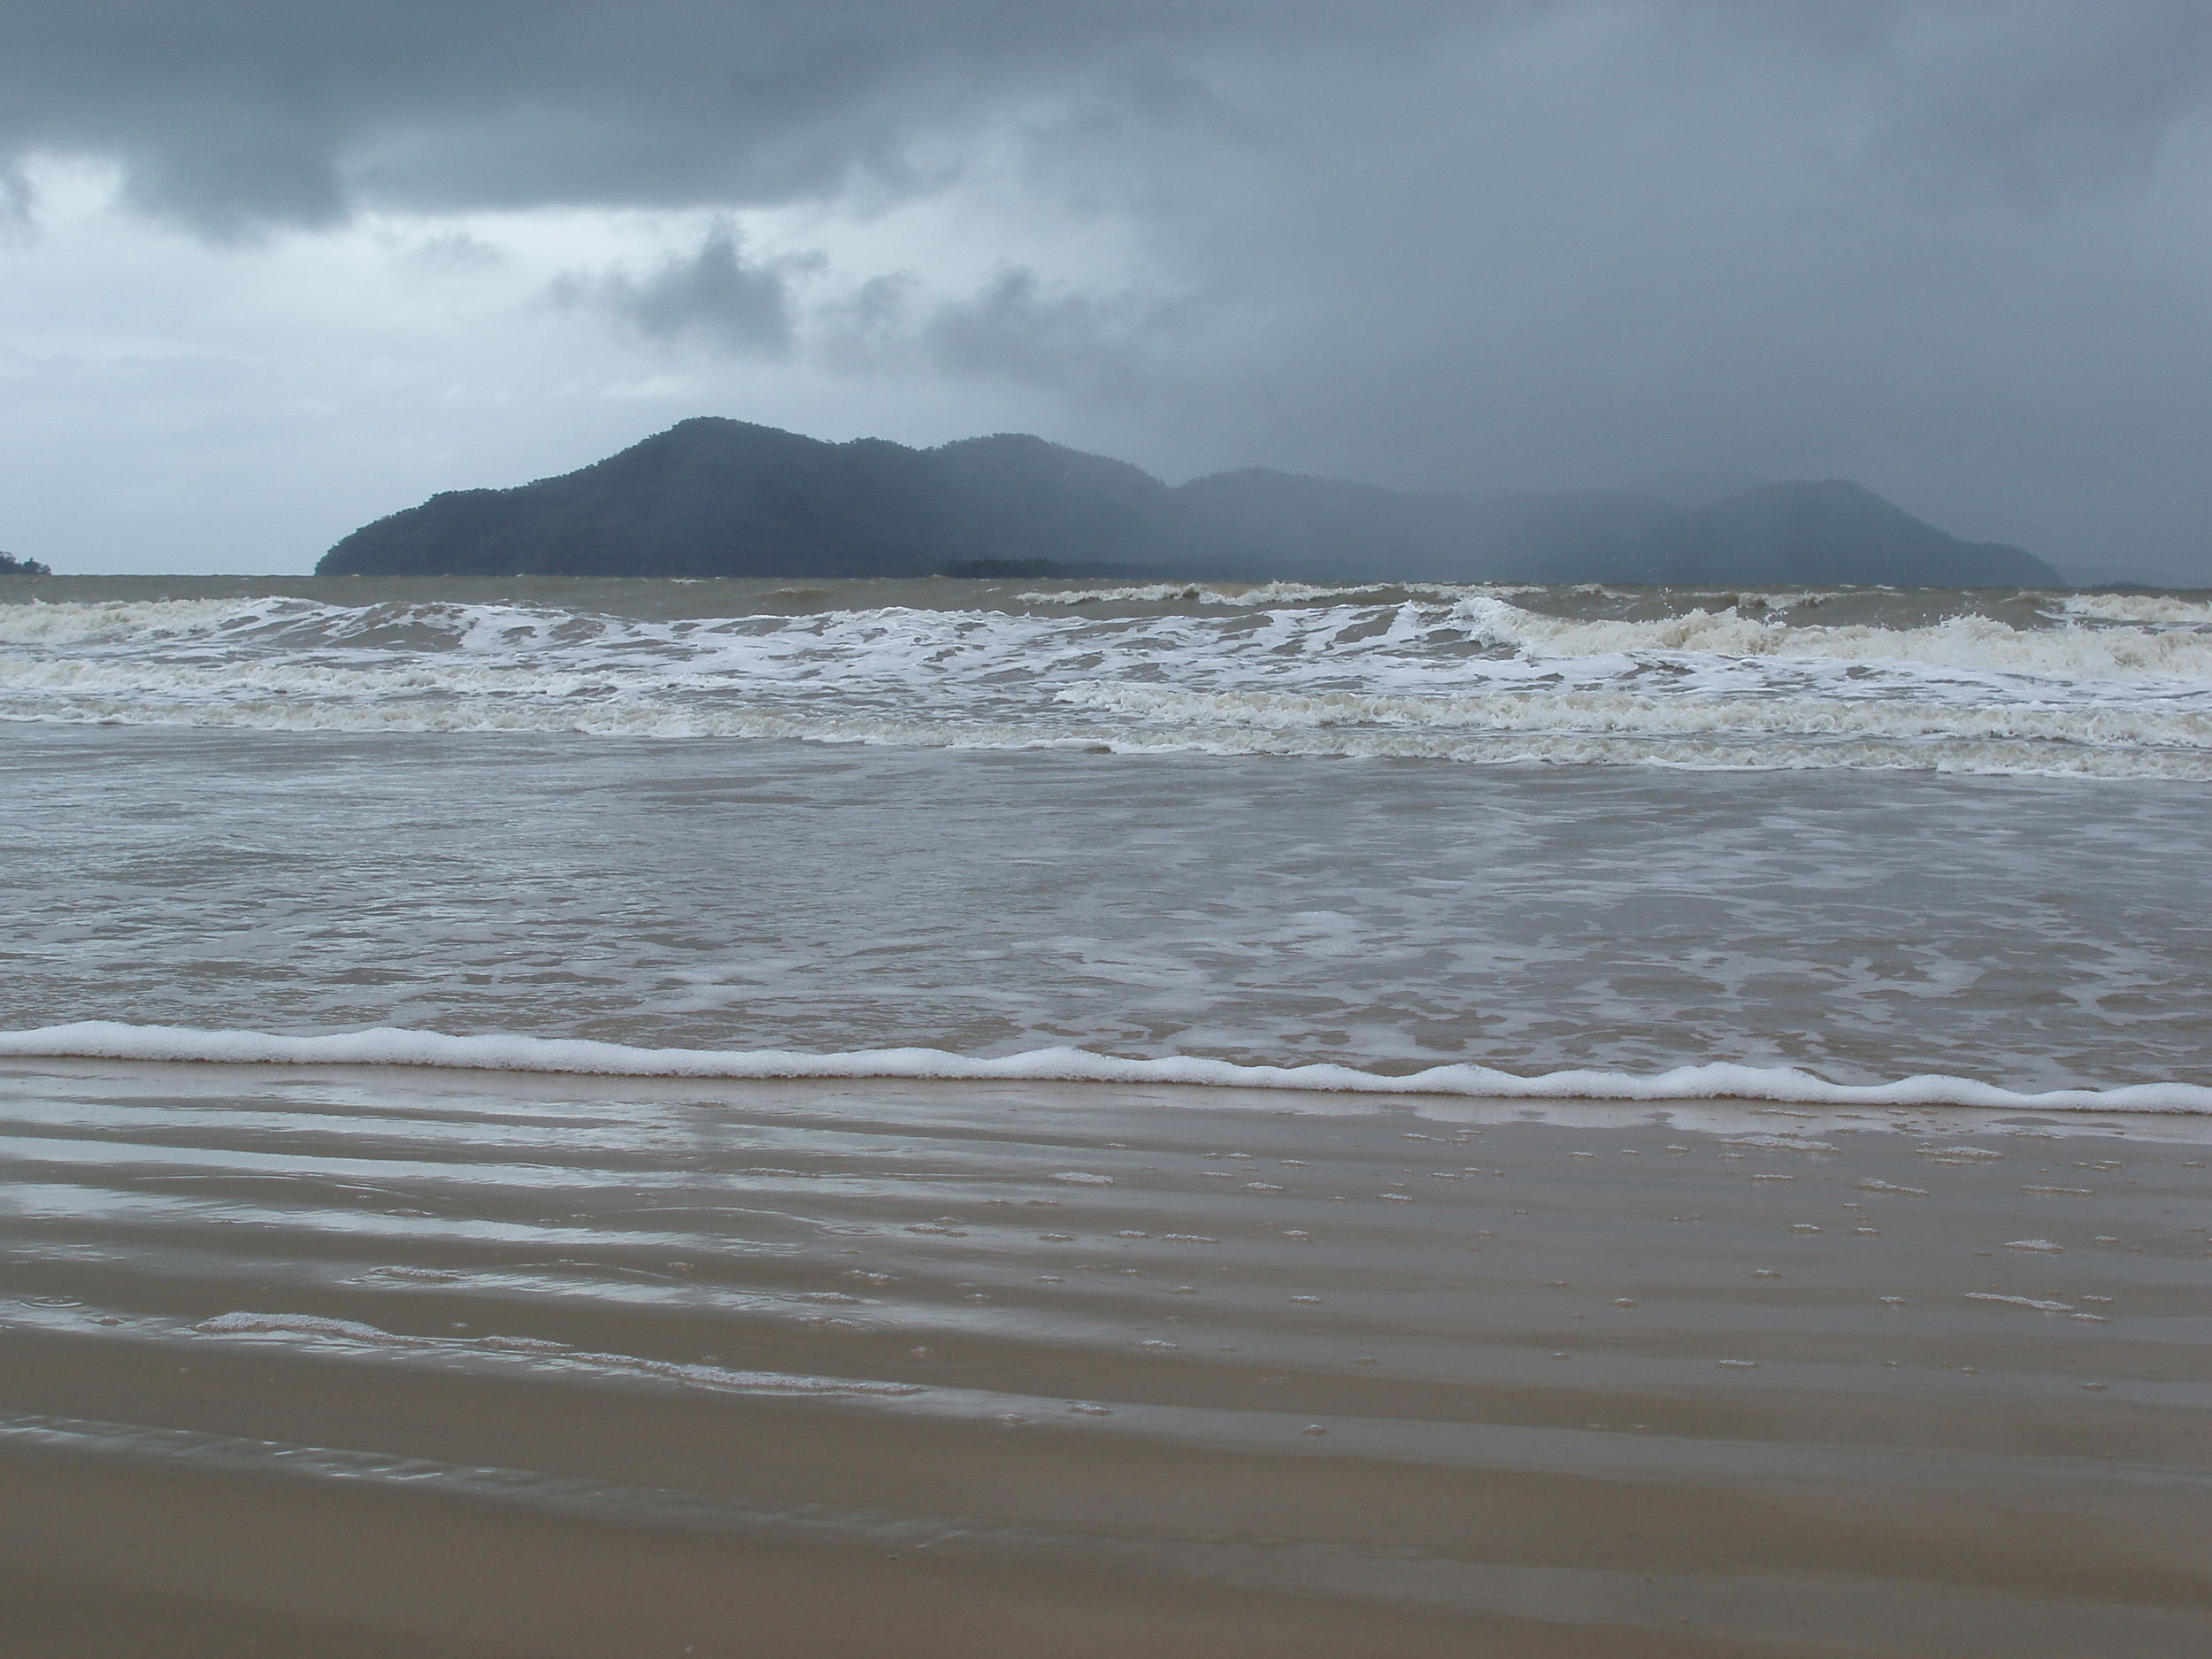 dunk island viewed from south mission beach on a stormy day